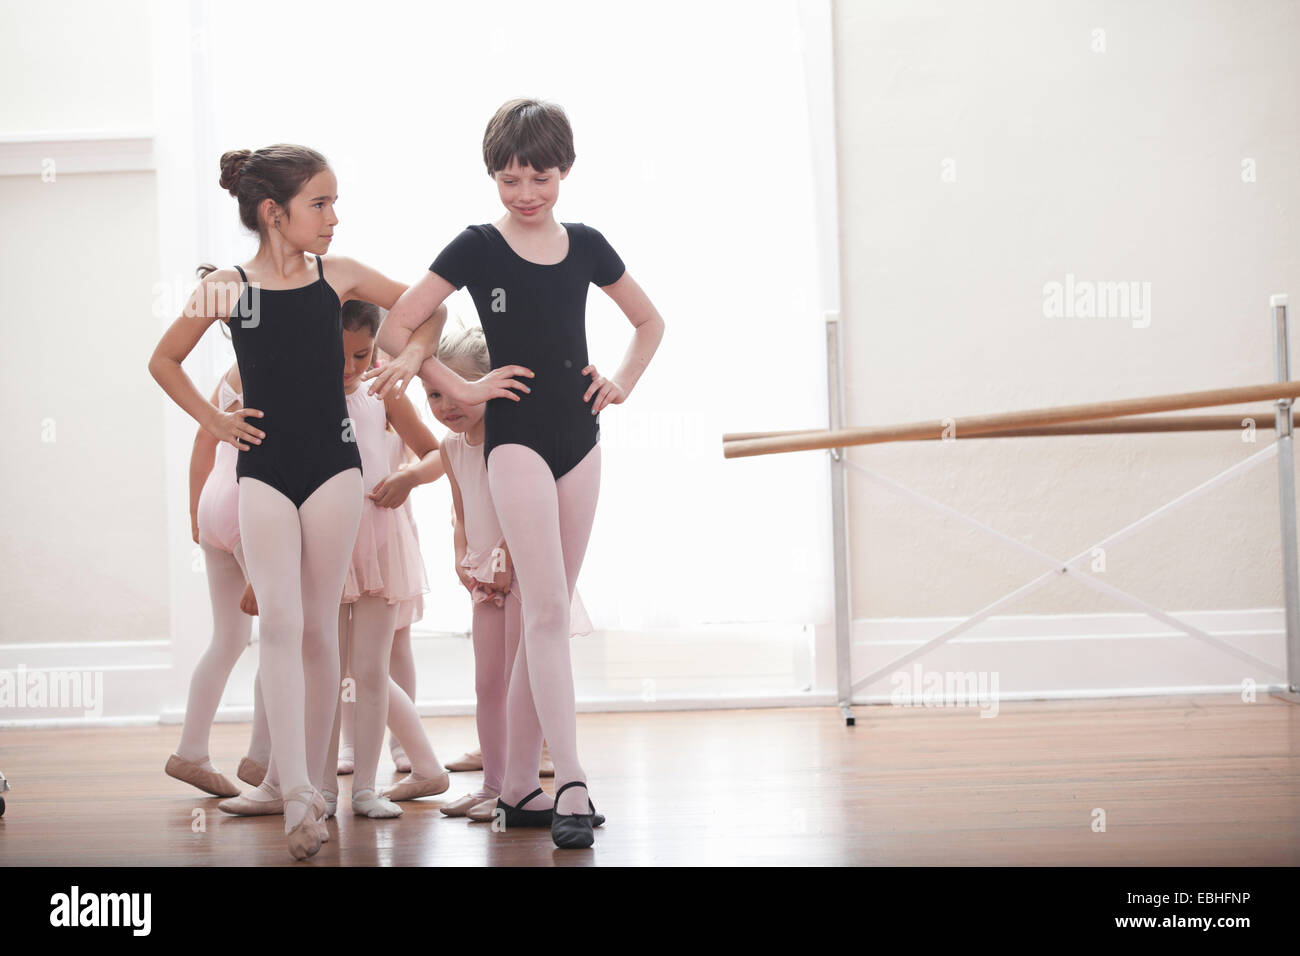 Group of girls practicing with hands on hips in ballet school - Stock Image